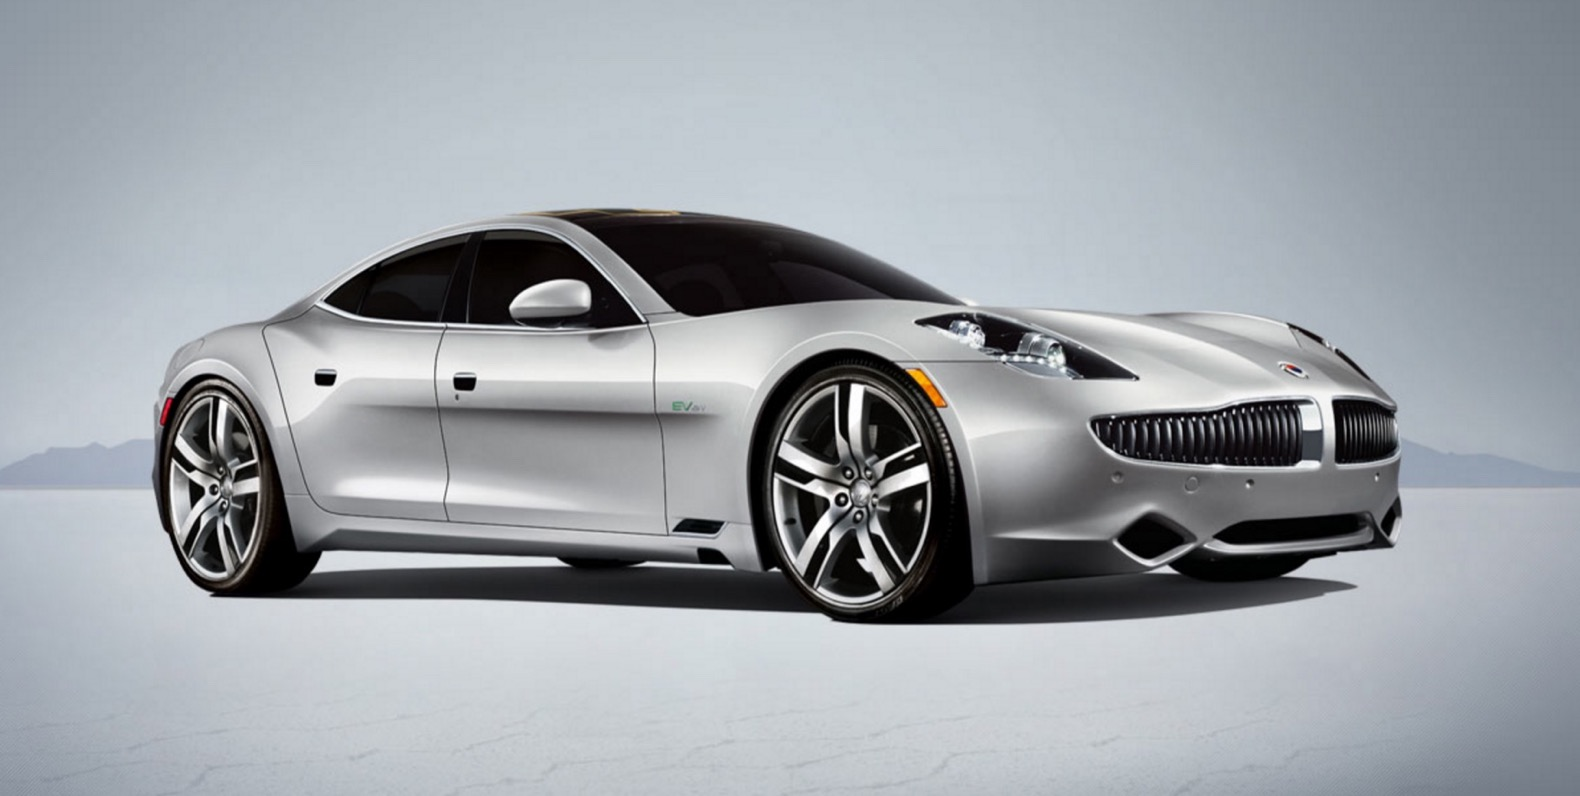 Production Of The Fisker Karma Could Relaunch In Mid 2016